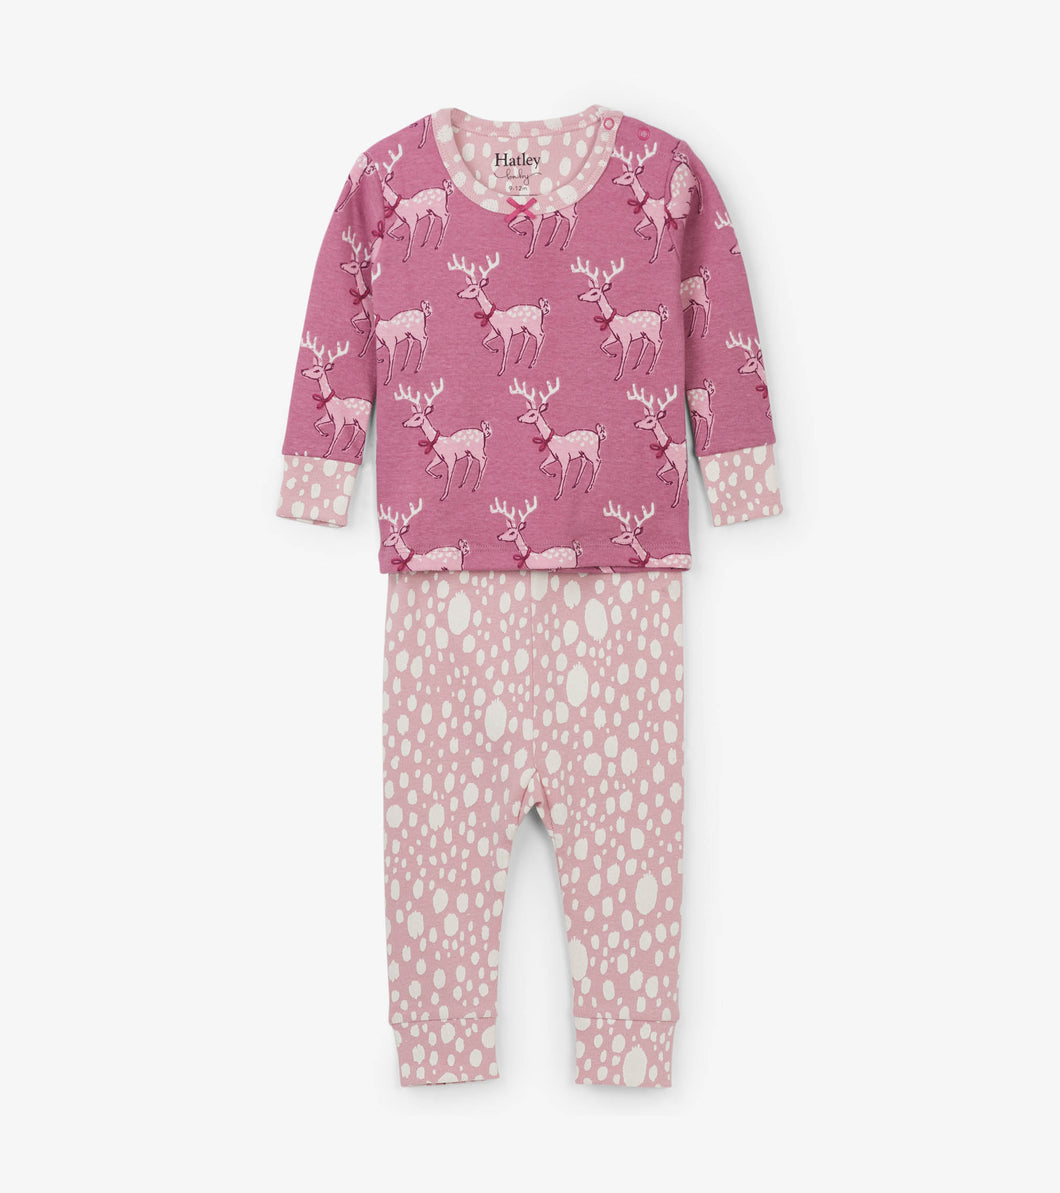 Darling Deer Organic Cotton Baby Pajama Set